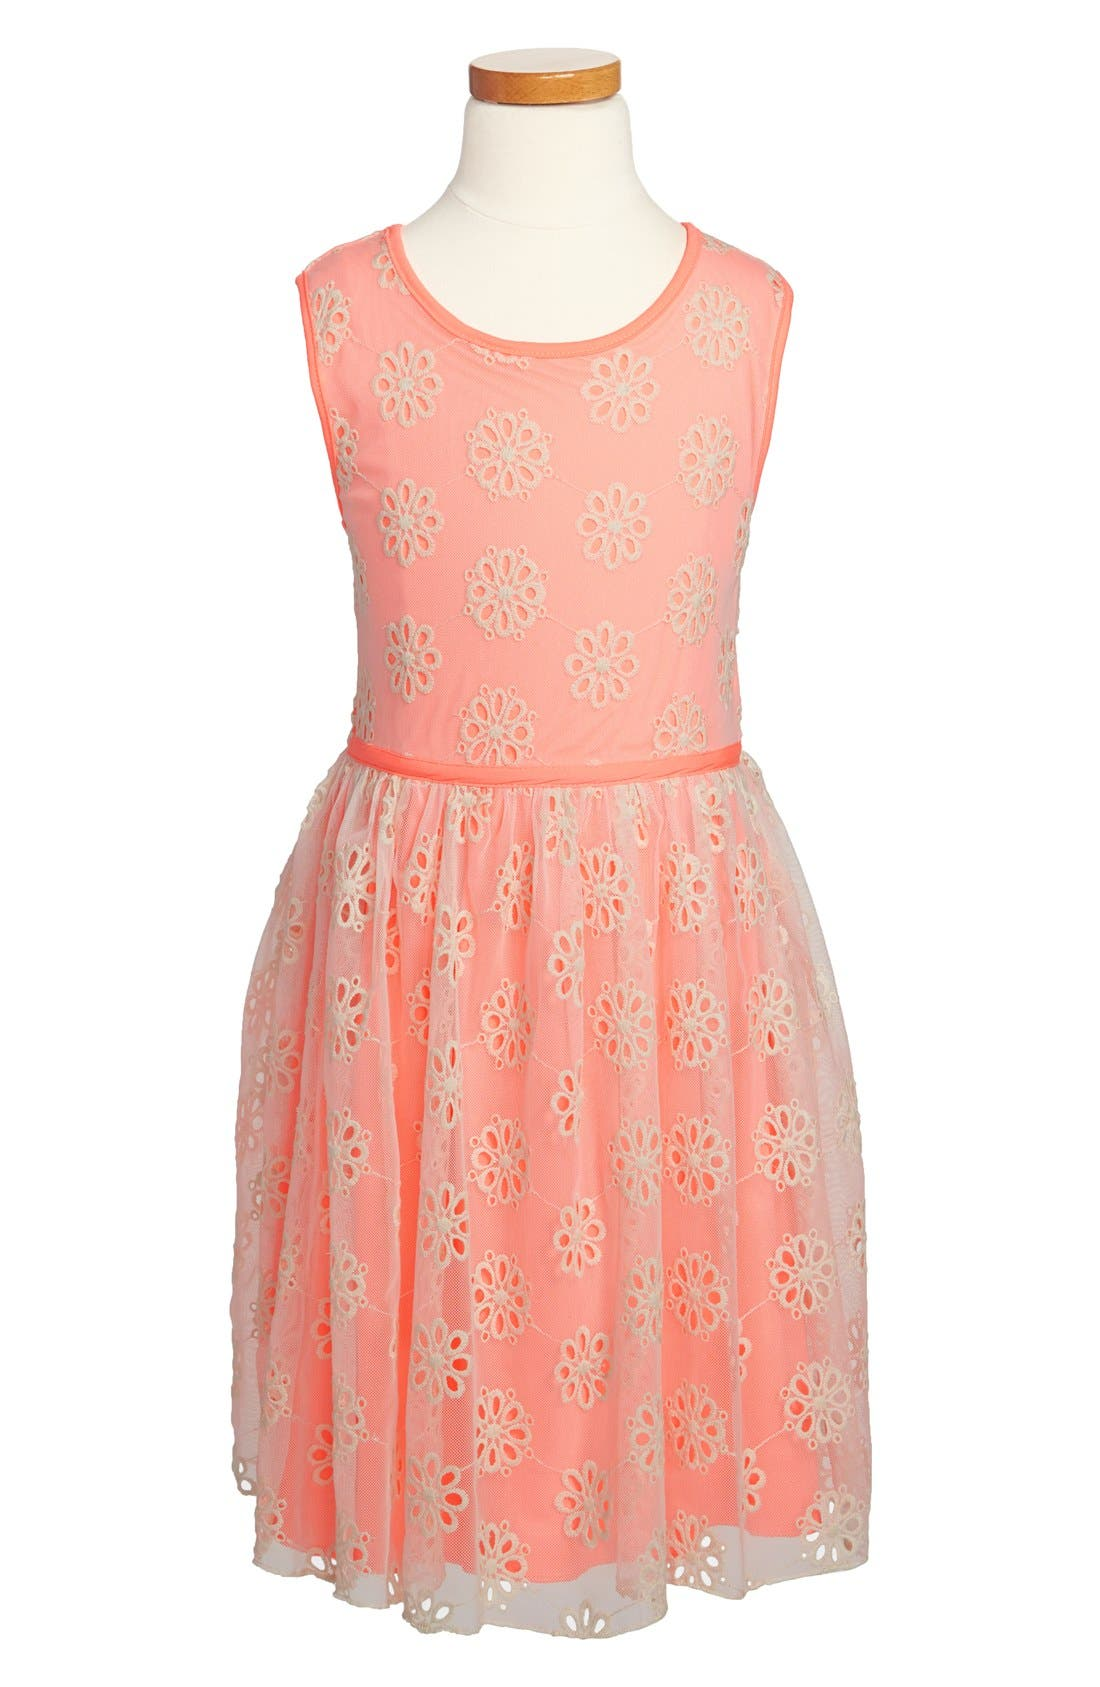 Alternate Image 1 Selected - Zunie Embroidered Sleeveless Dress (Little Girls & Big Girls)